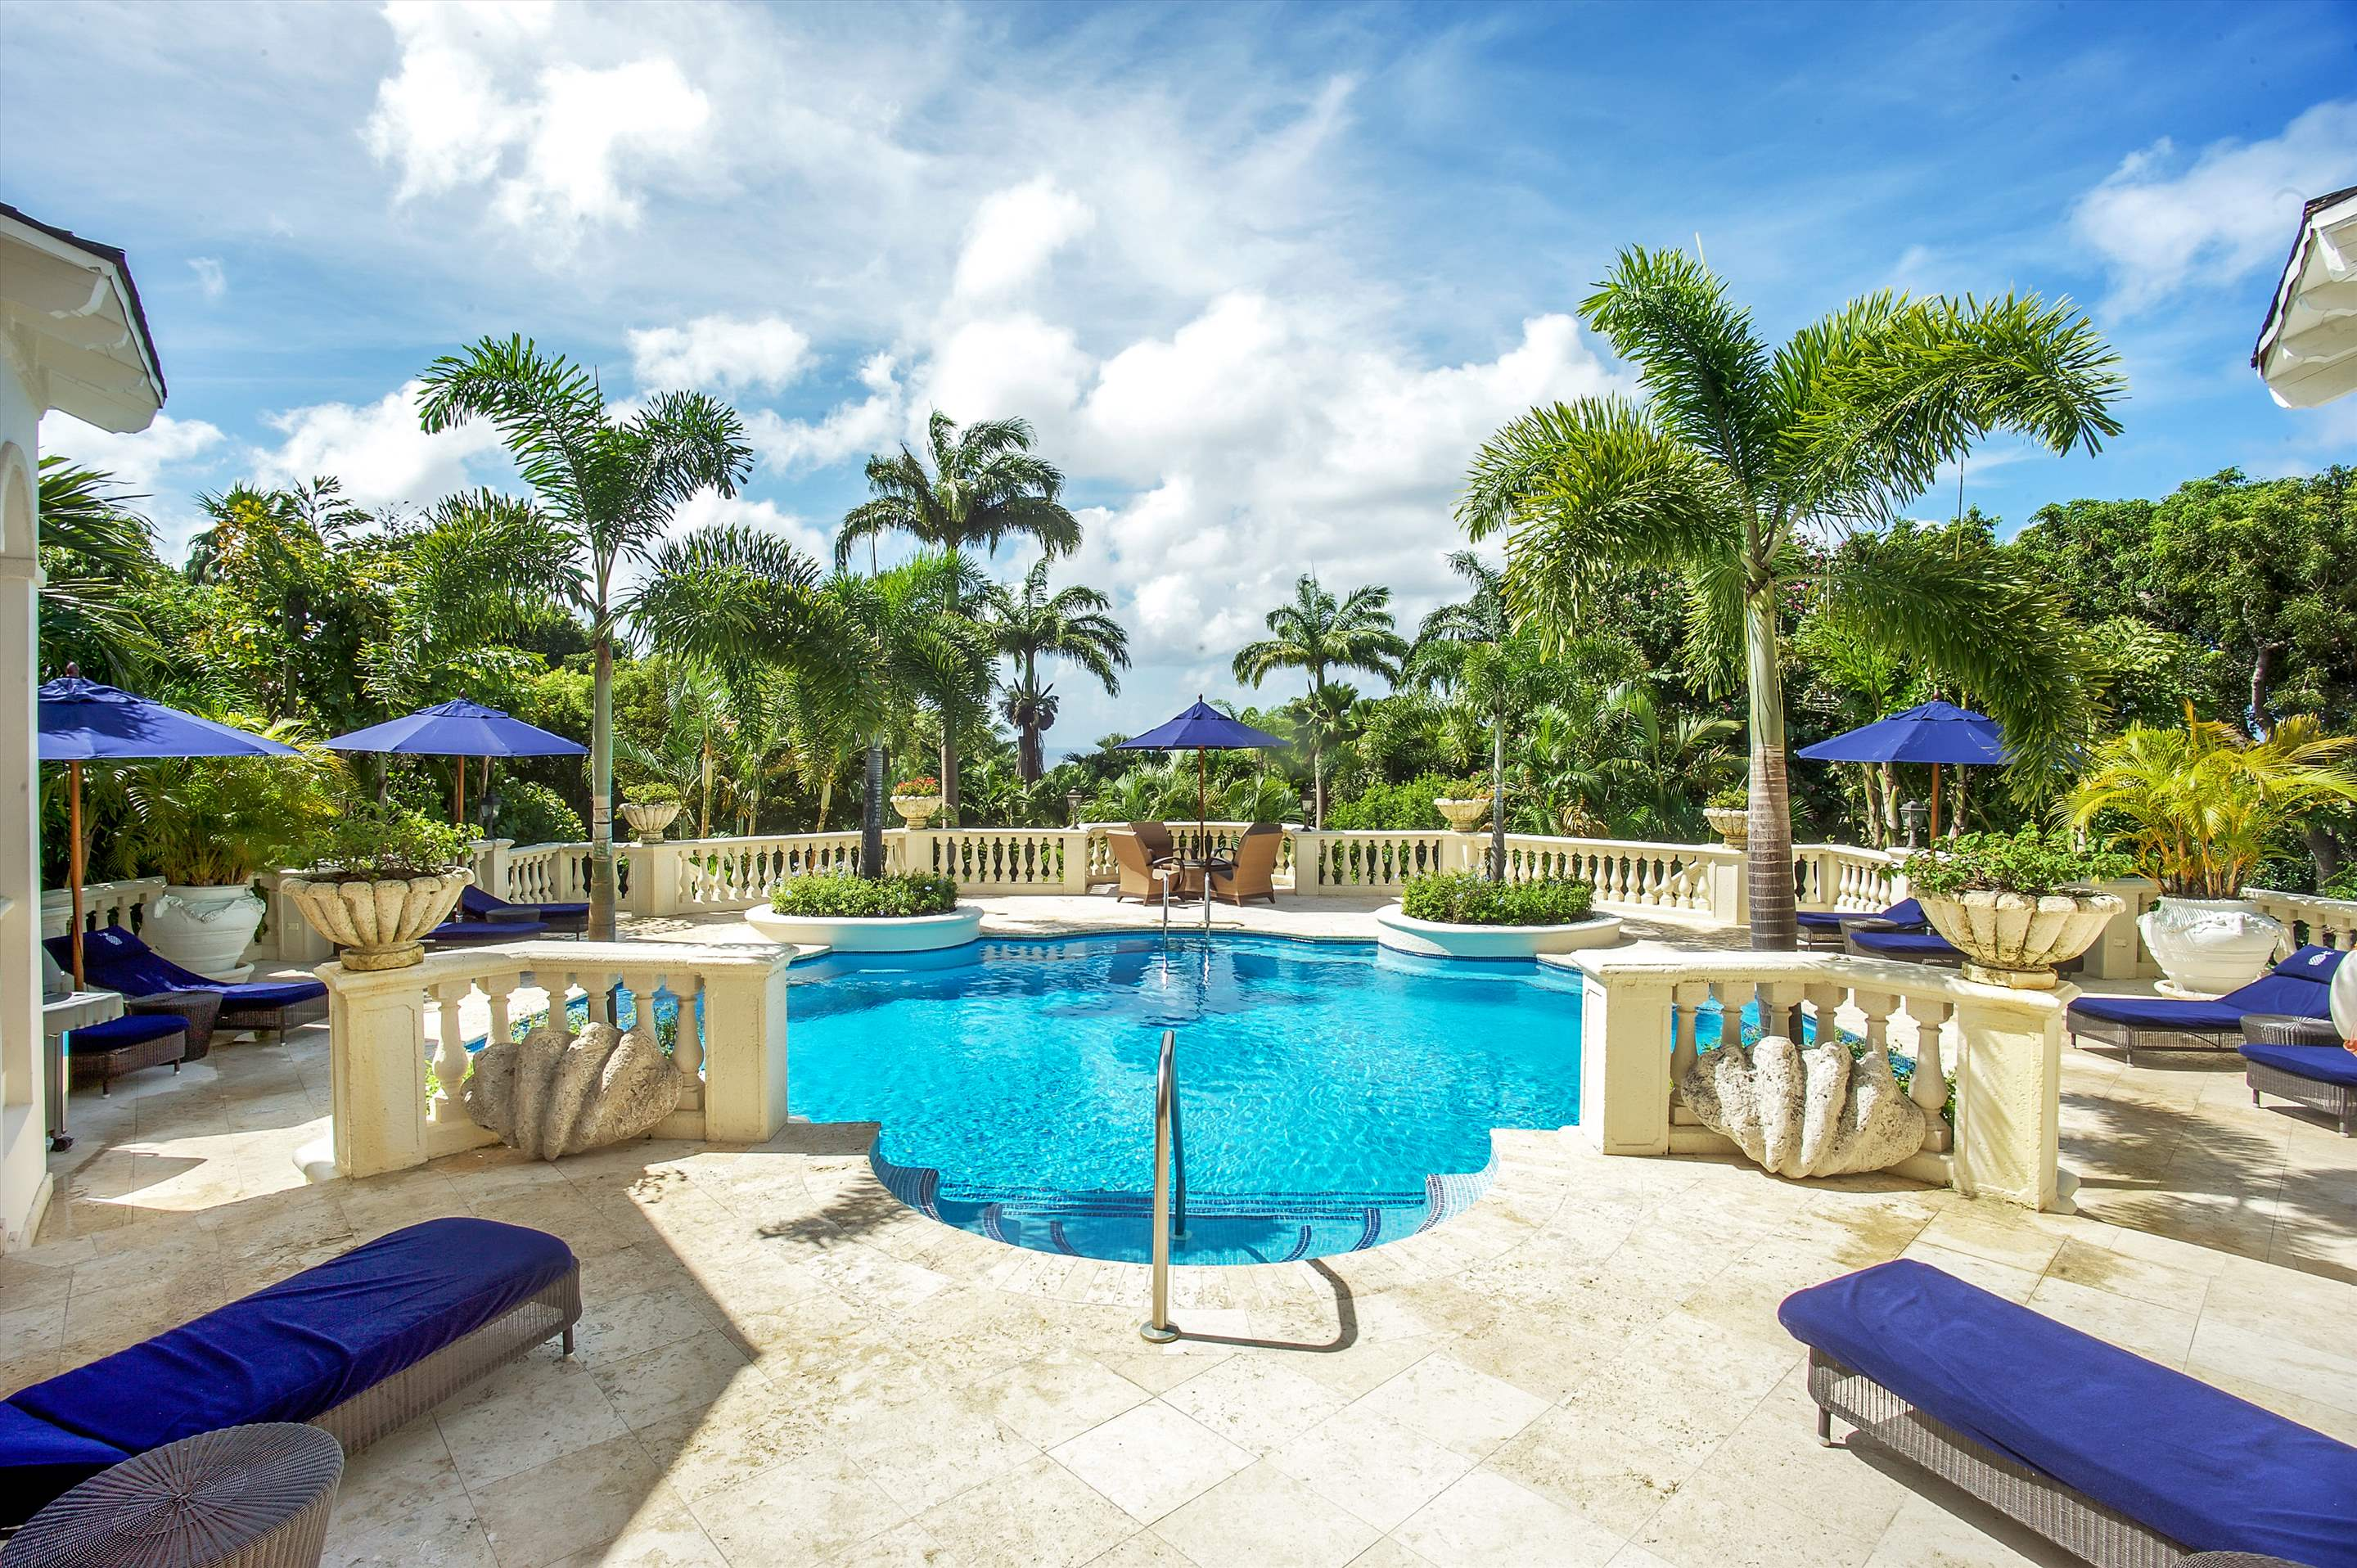 Plantation House, Royal Westmoreland, 6 bedroom, 6 bedroom villa in St. James & West Coast, Barbados Photo #21